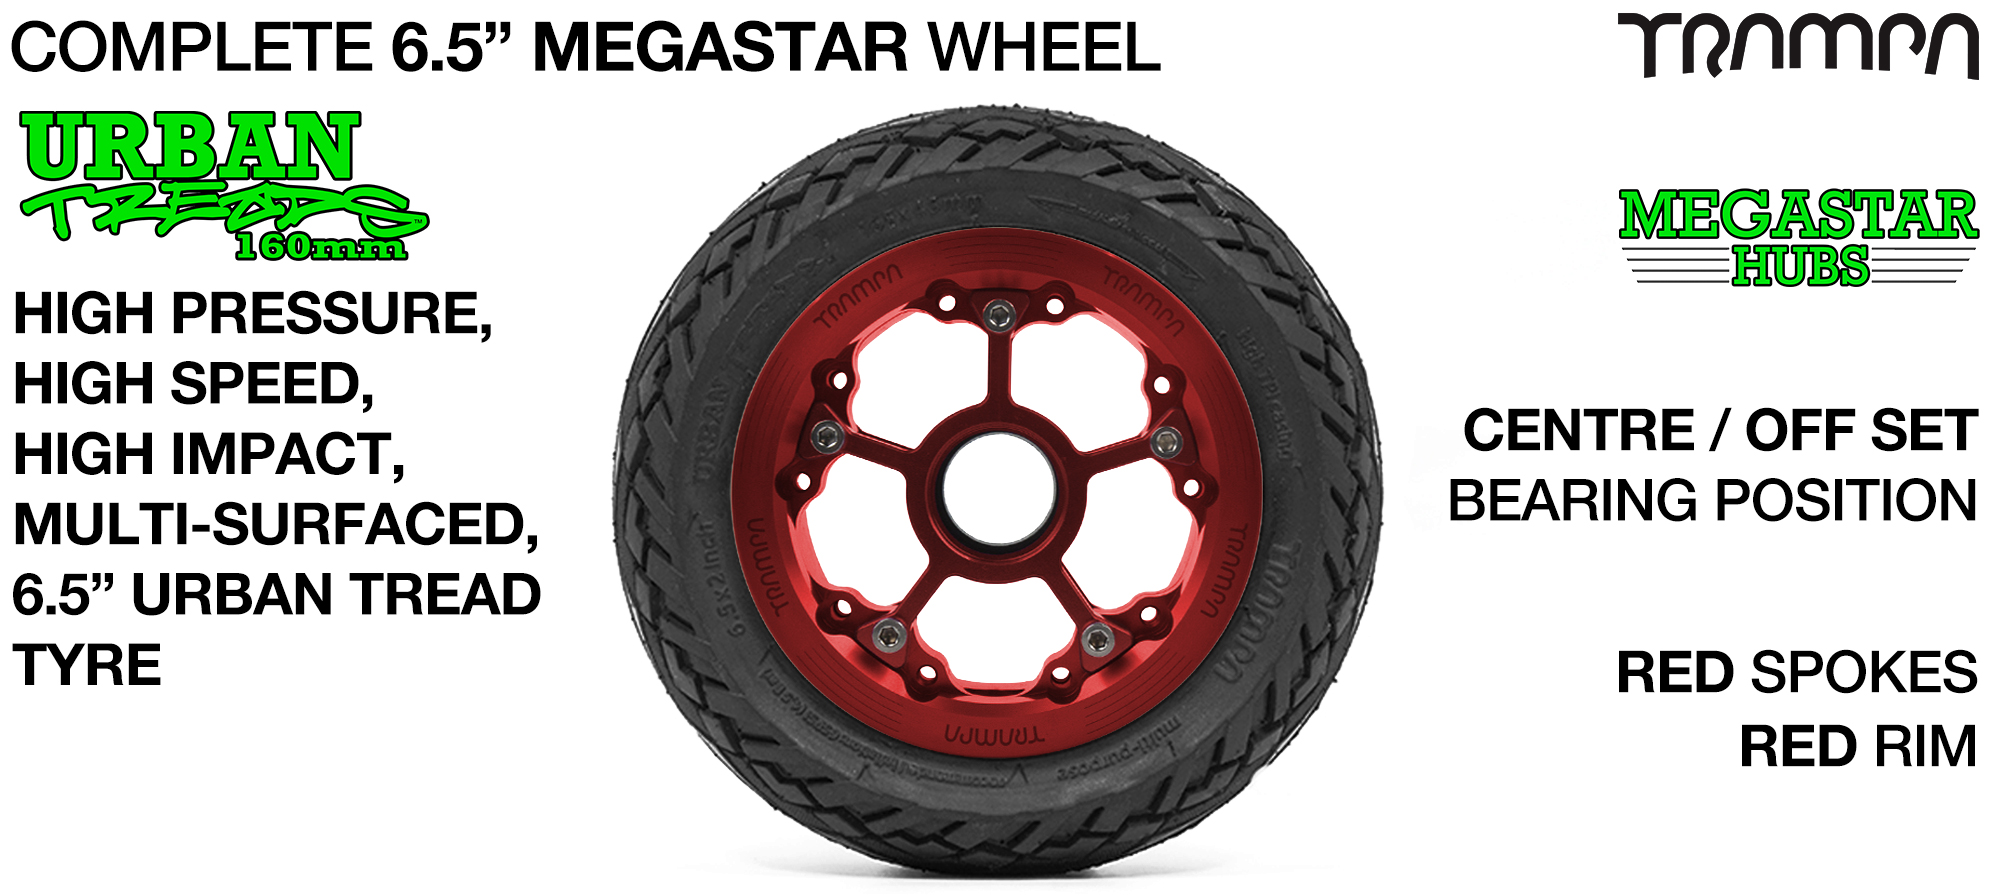 RED MEGASTAR Rims with RED Spokes & 6.5 Inch URBAN Treads Tyres